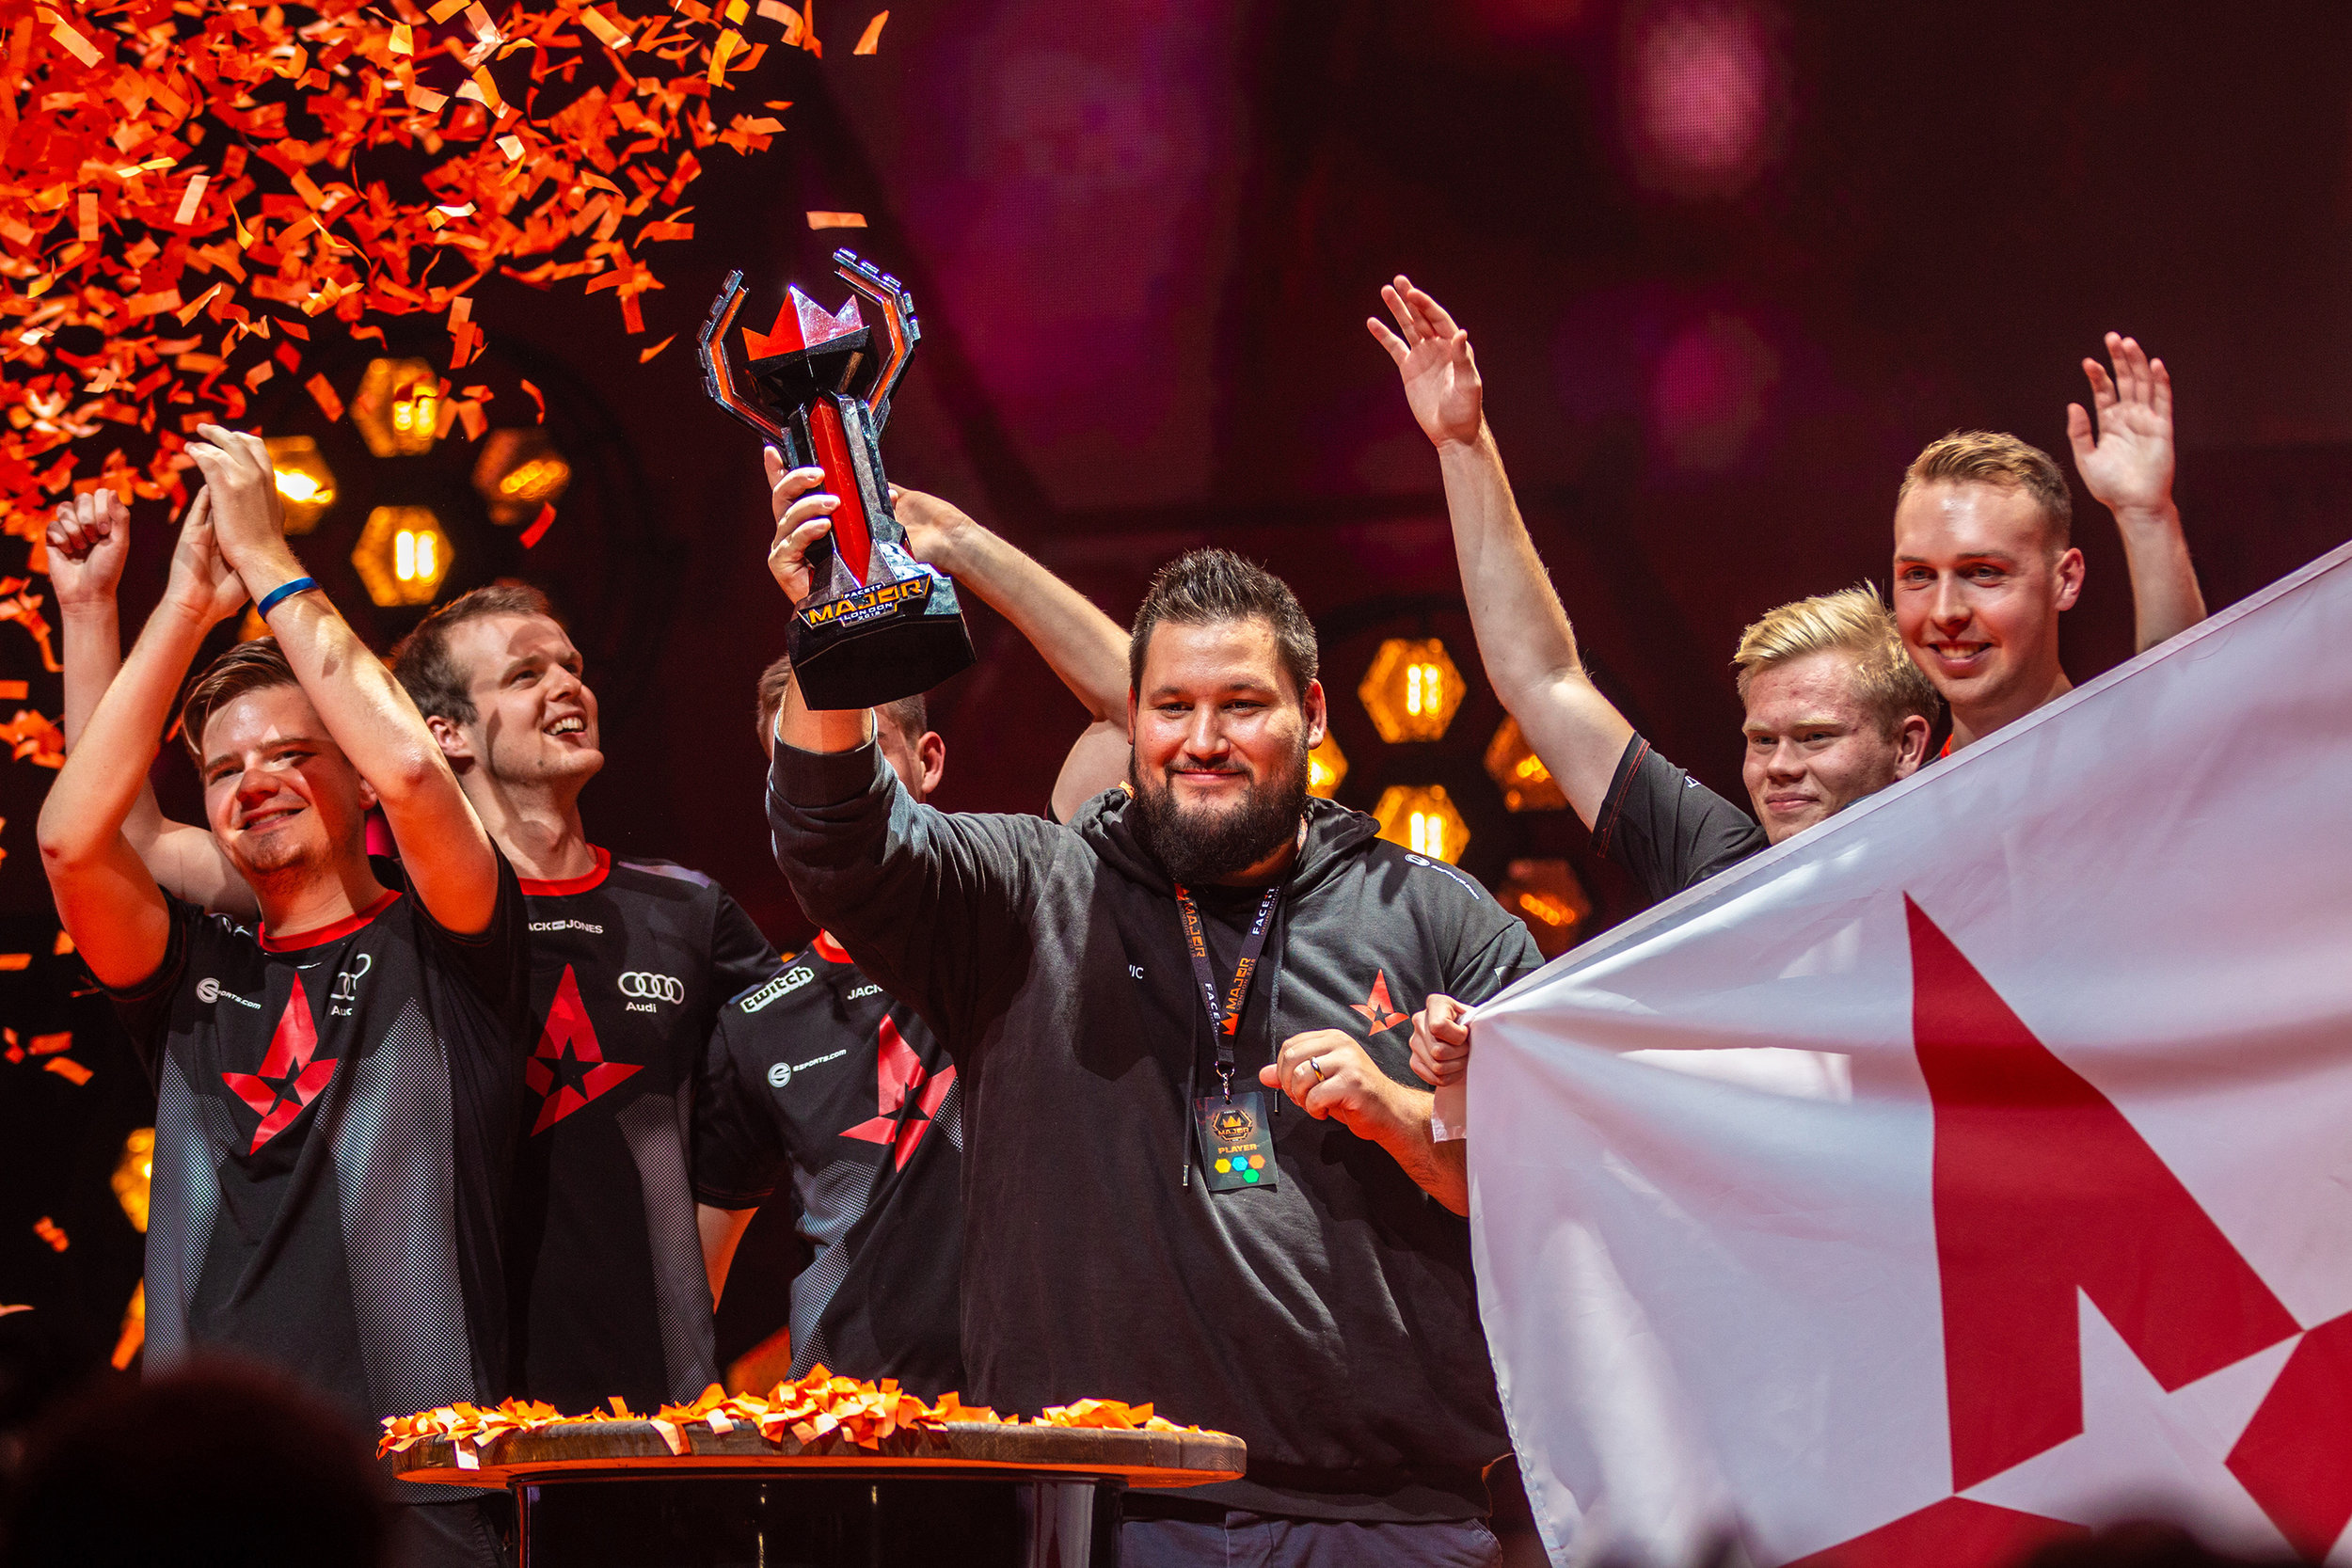 Team Astralis grabbing their trophy after big win over Navi at FaceIT Major at The SSE Arena, Wembley on September 23, 2018 in London, England.  Photo by Kieran Gibbs / ESPAT Media